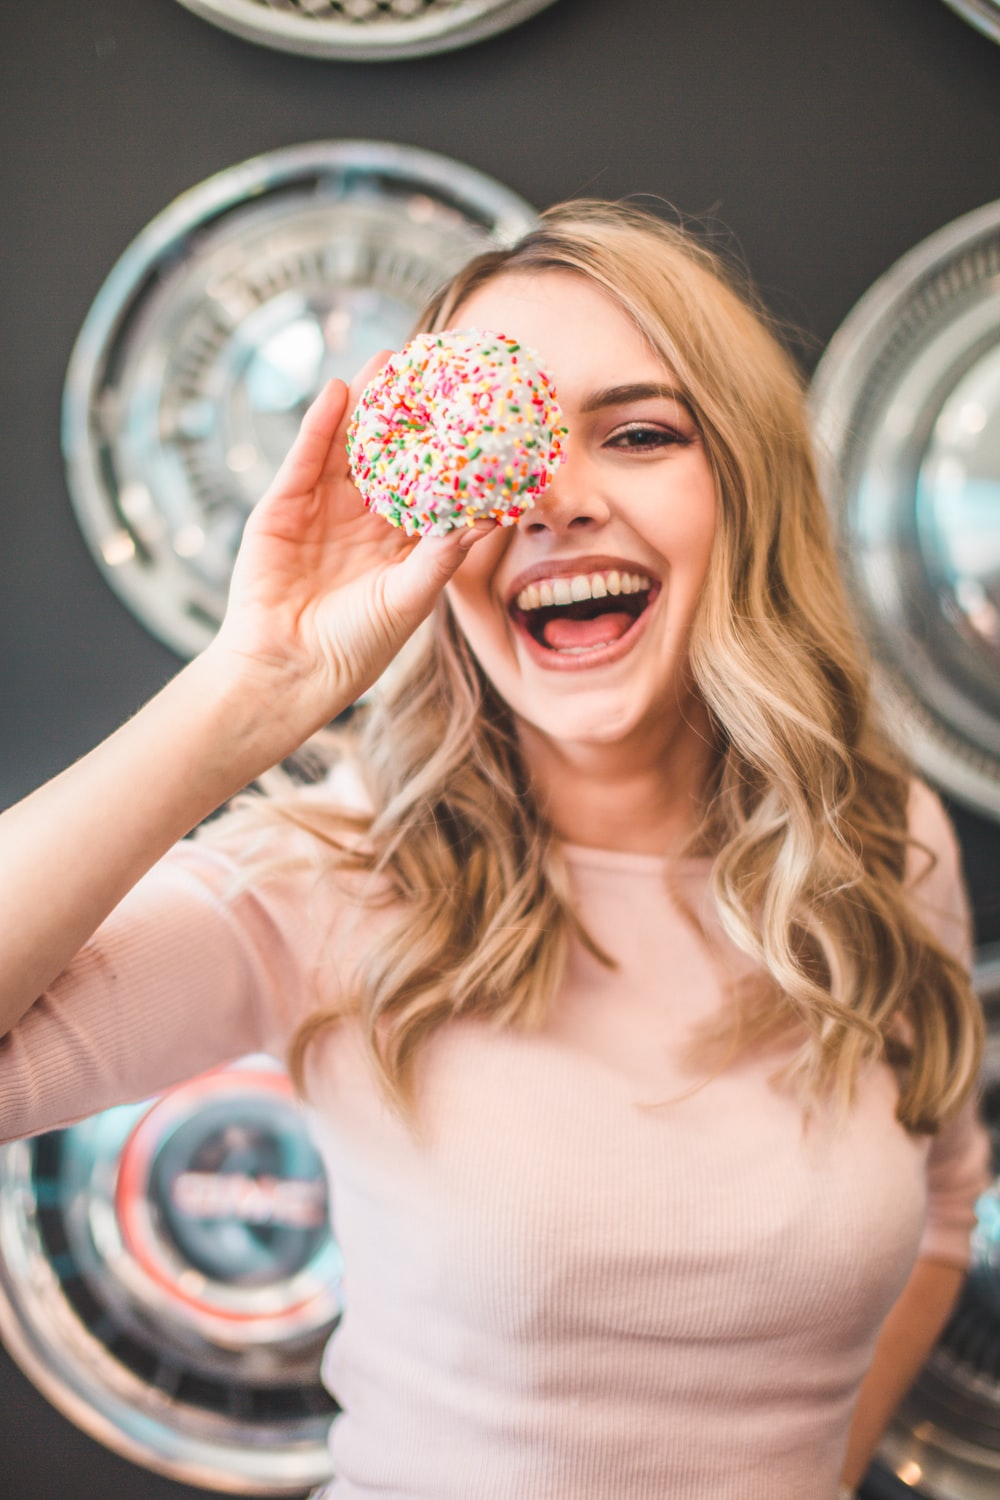 shallow focus photography of woman holding doughnut